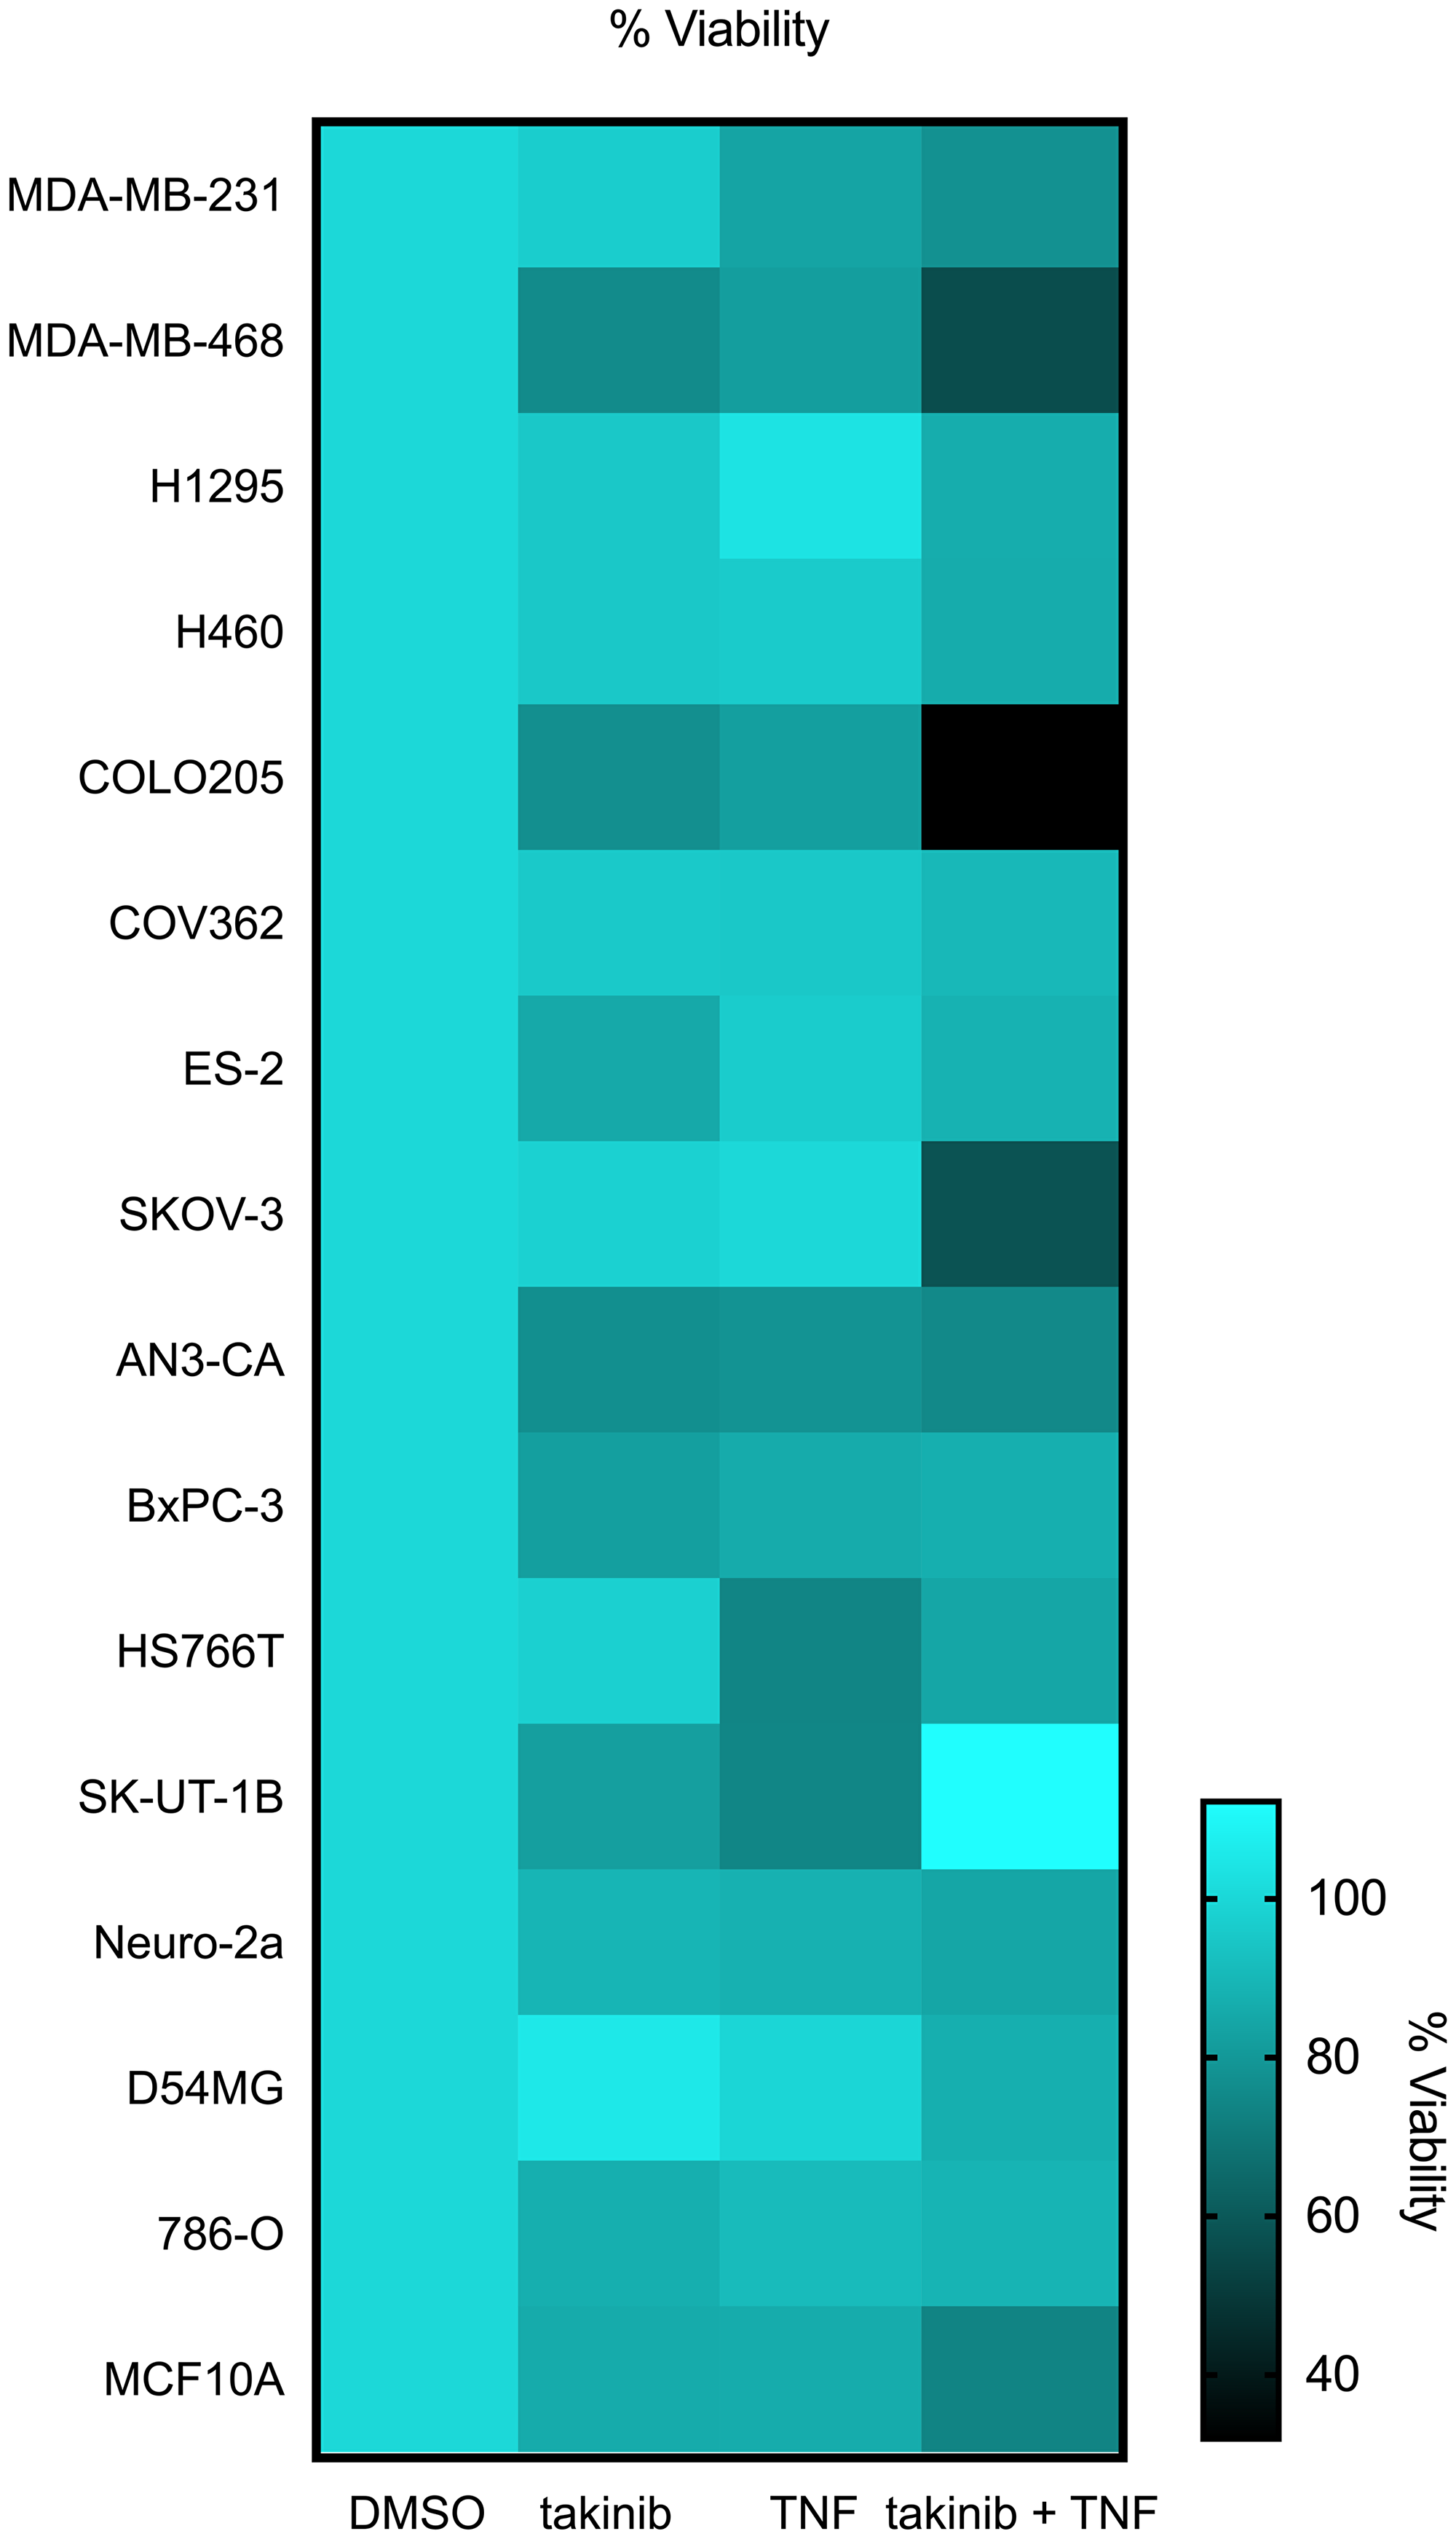 The anti-cancer effects of takinib in vitro is shown across various cell lines.